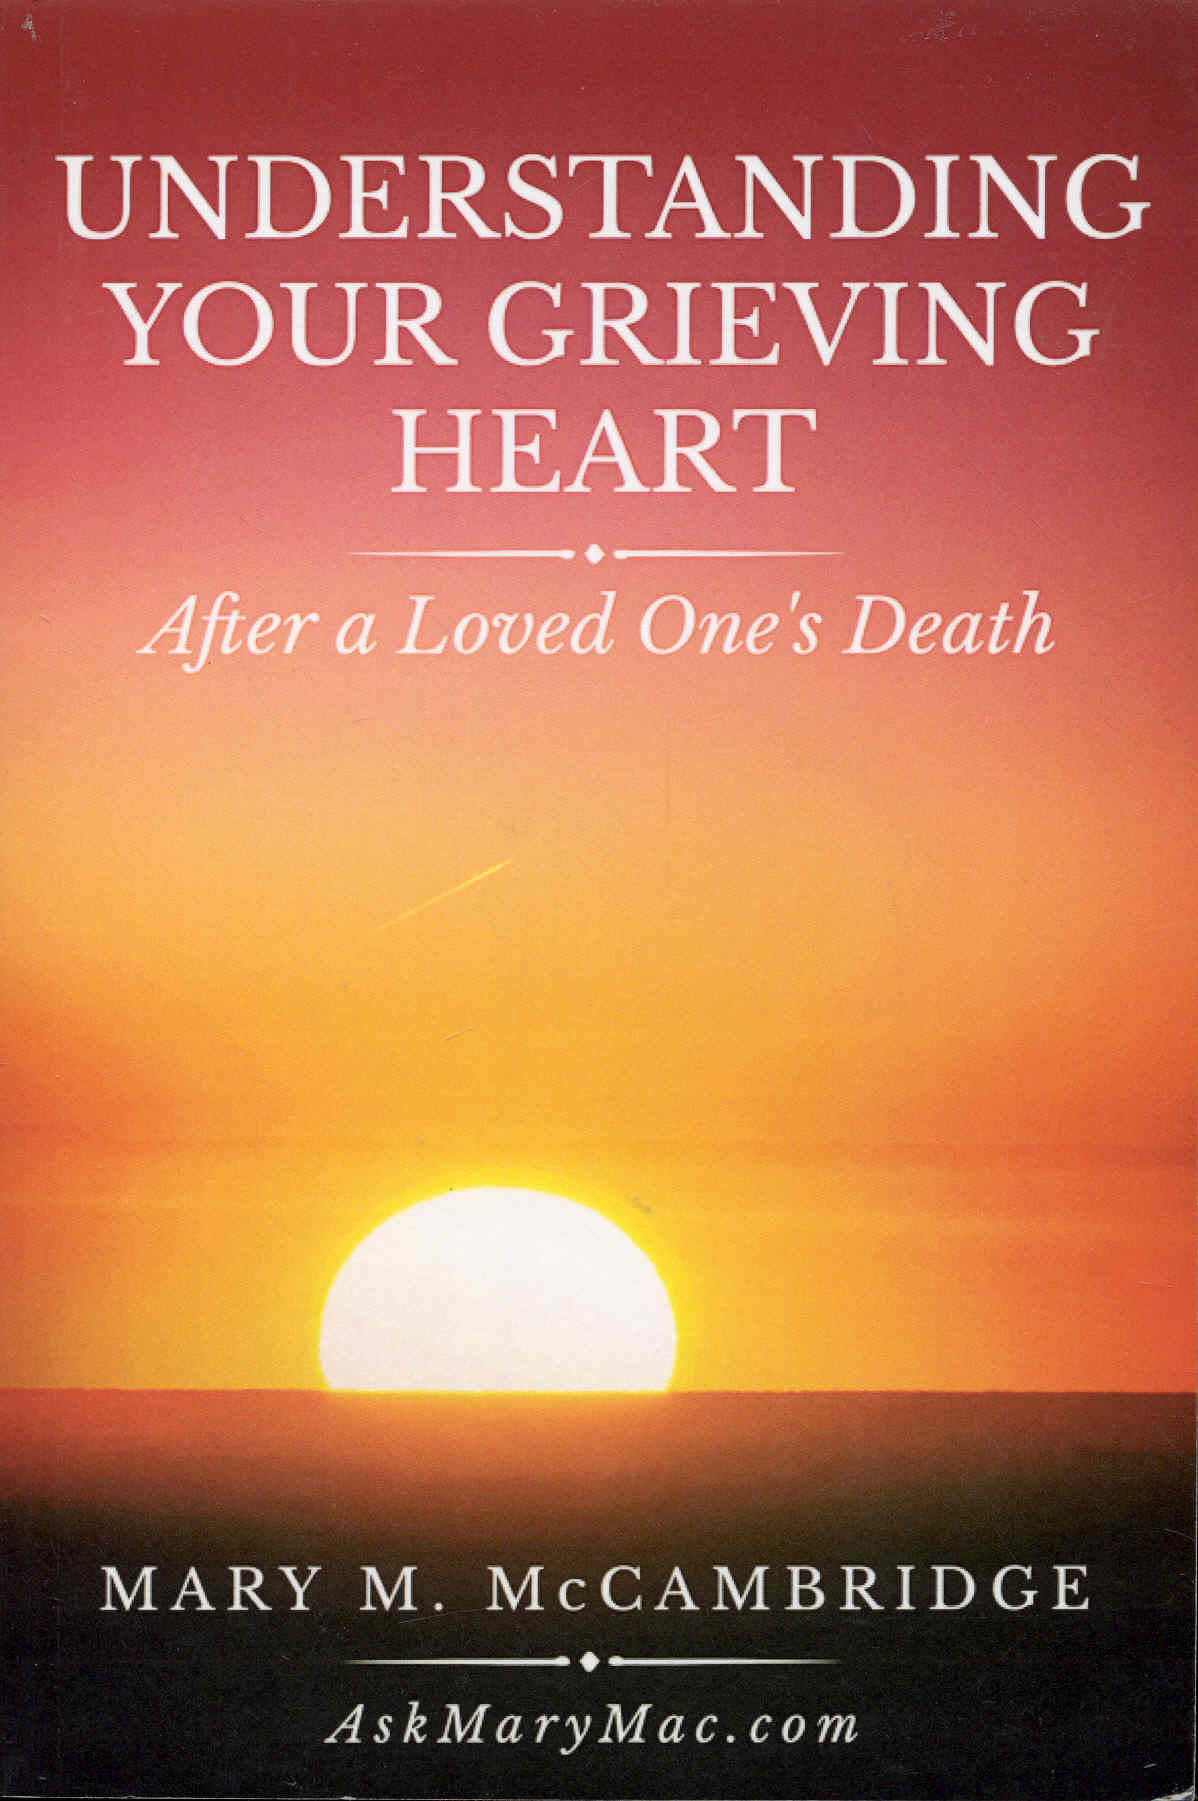 Image for Understanding Your Grieving Heart After a Loved One's Death